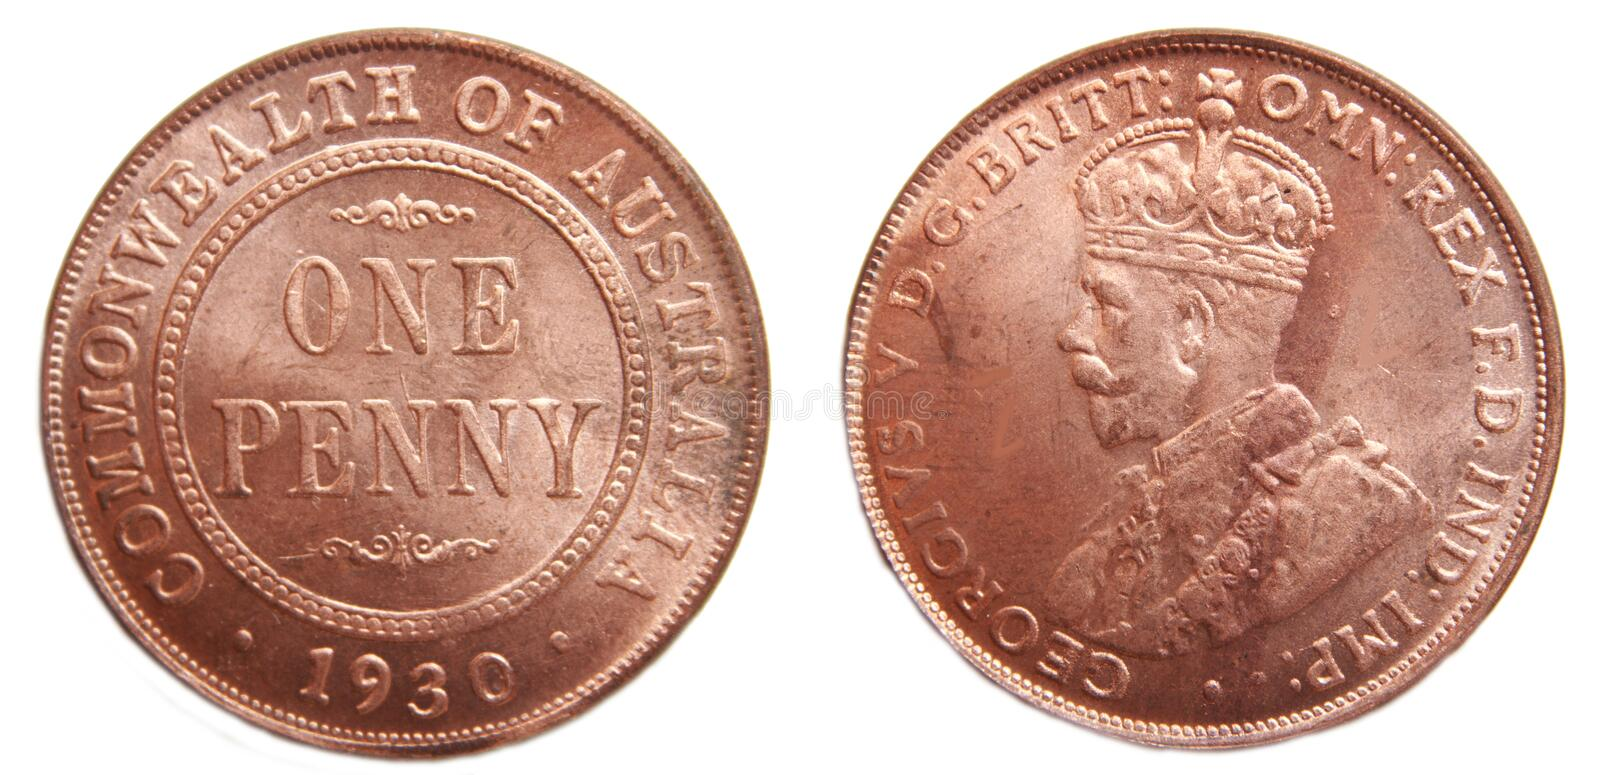 Australian Penny pre-decimal 1930 Rare coin. Australian 1930 Penny pre-decimal rare coper coin on isolated white background stock photo